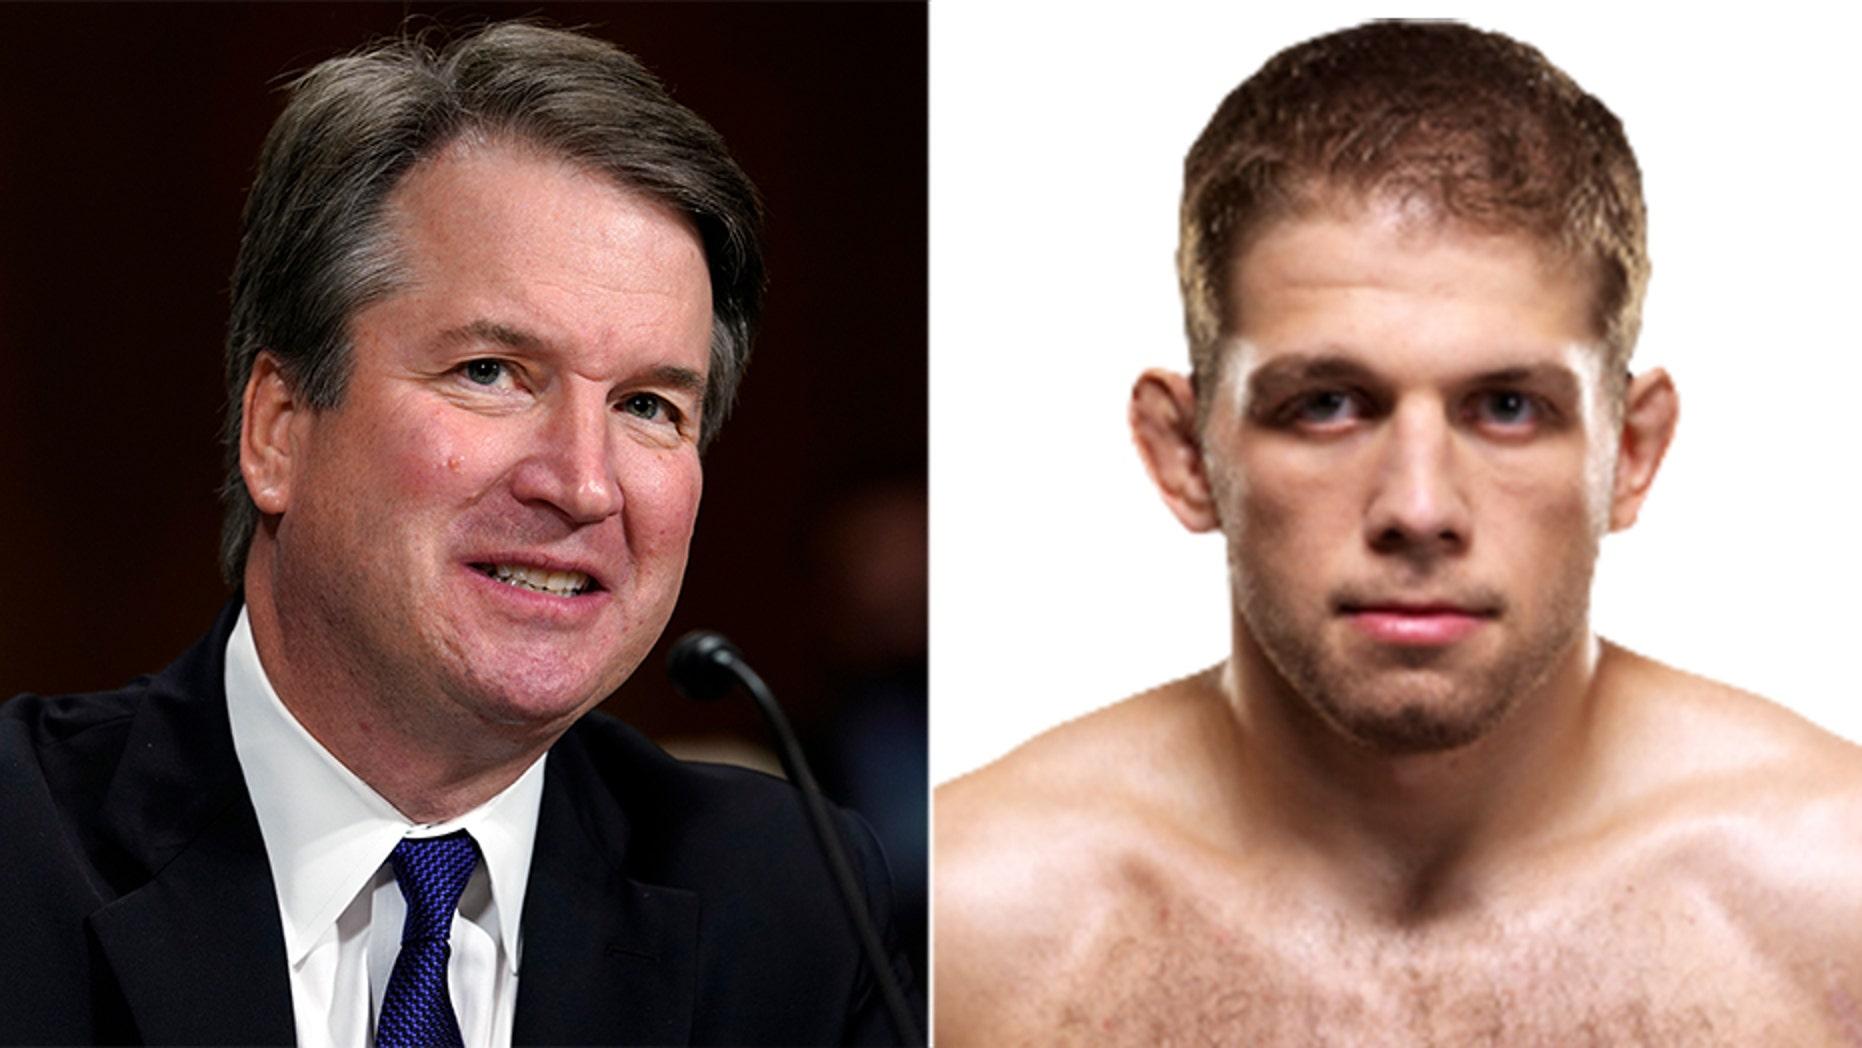 Nik Lentz gave a shout out to Supreme Court Justice Brett Kavanaugh after winning his UFC 229 match.